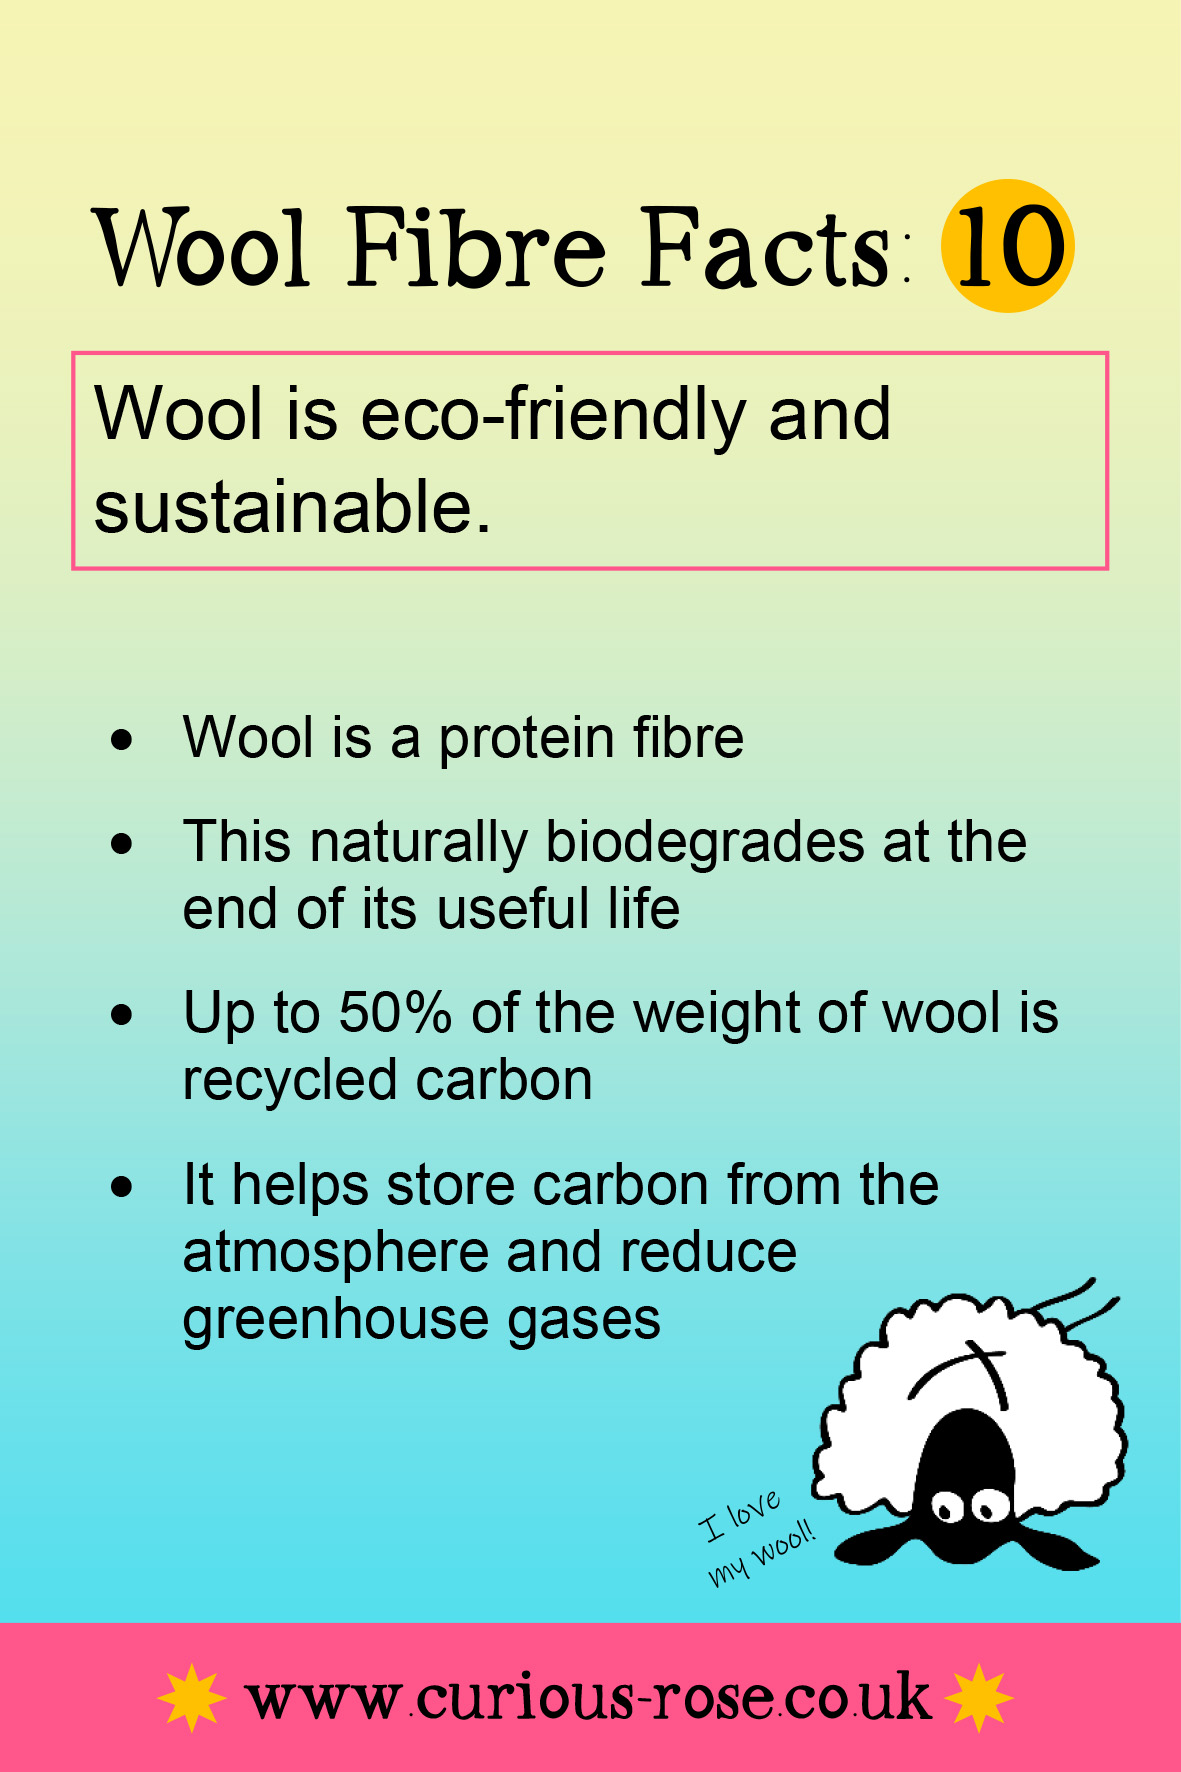 Wool Fibre Facts 10.jpg